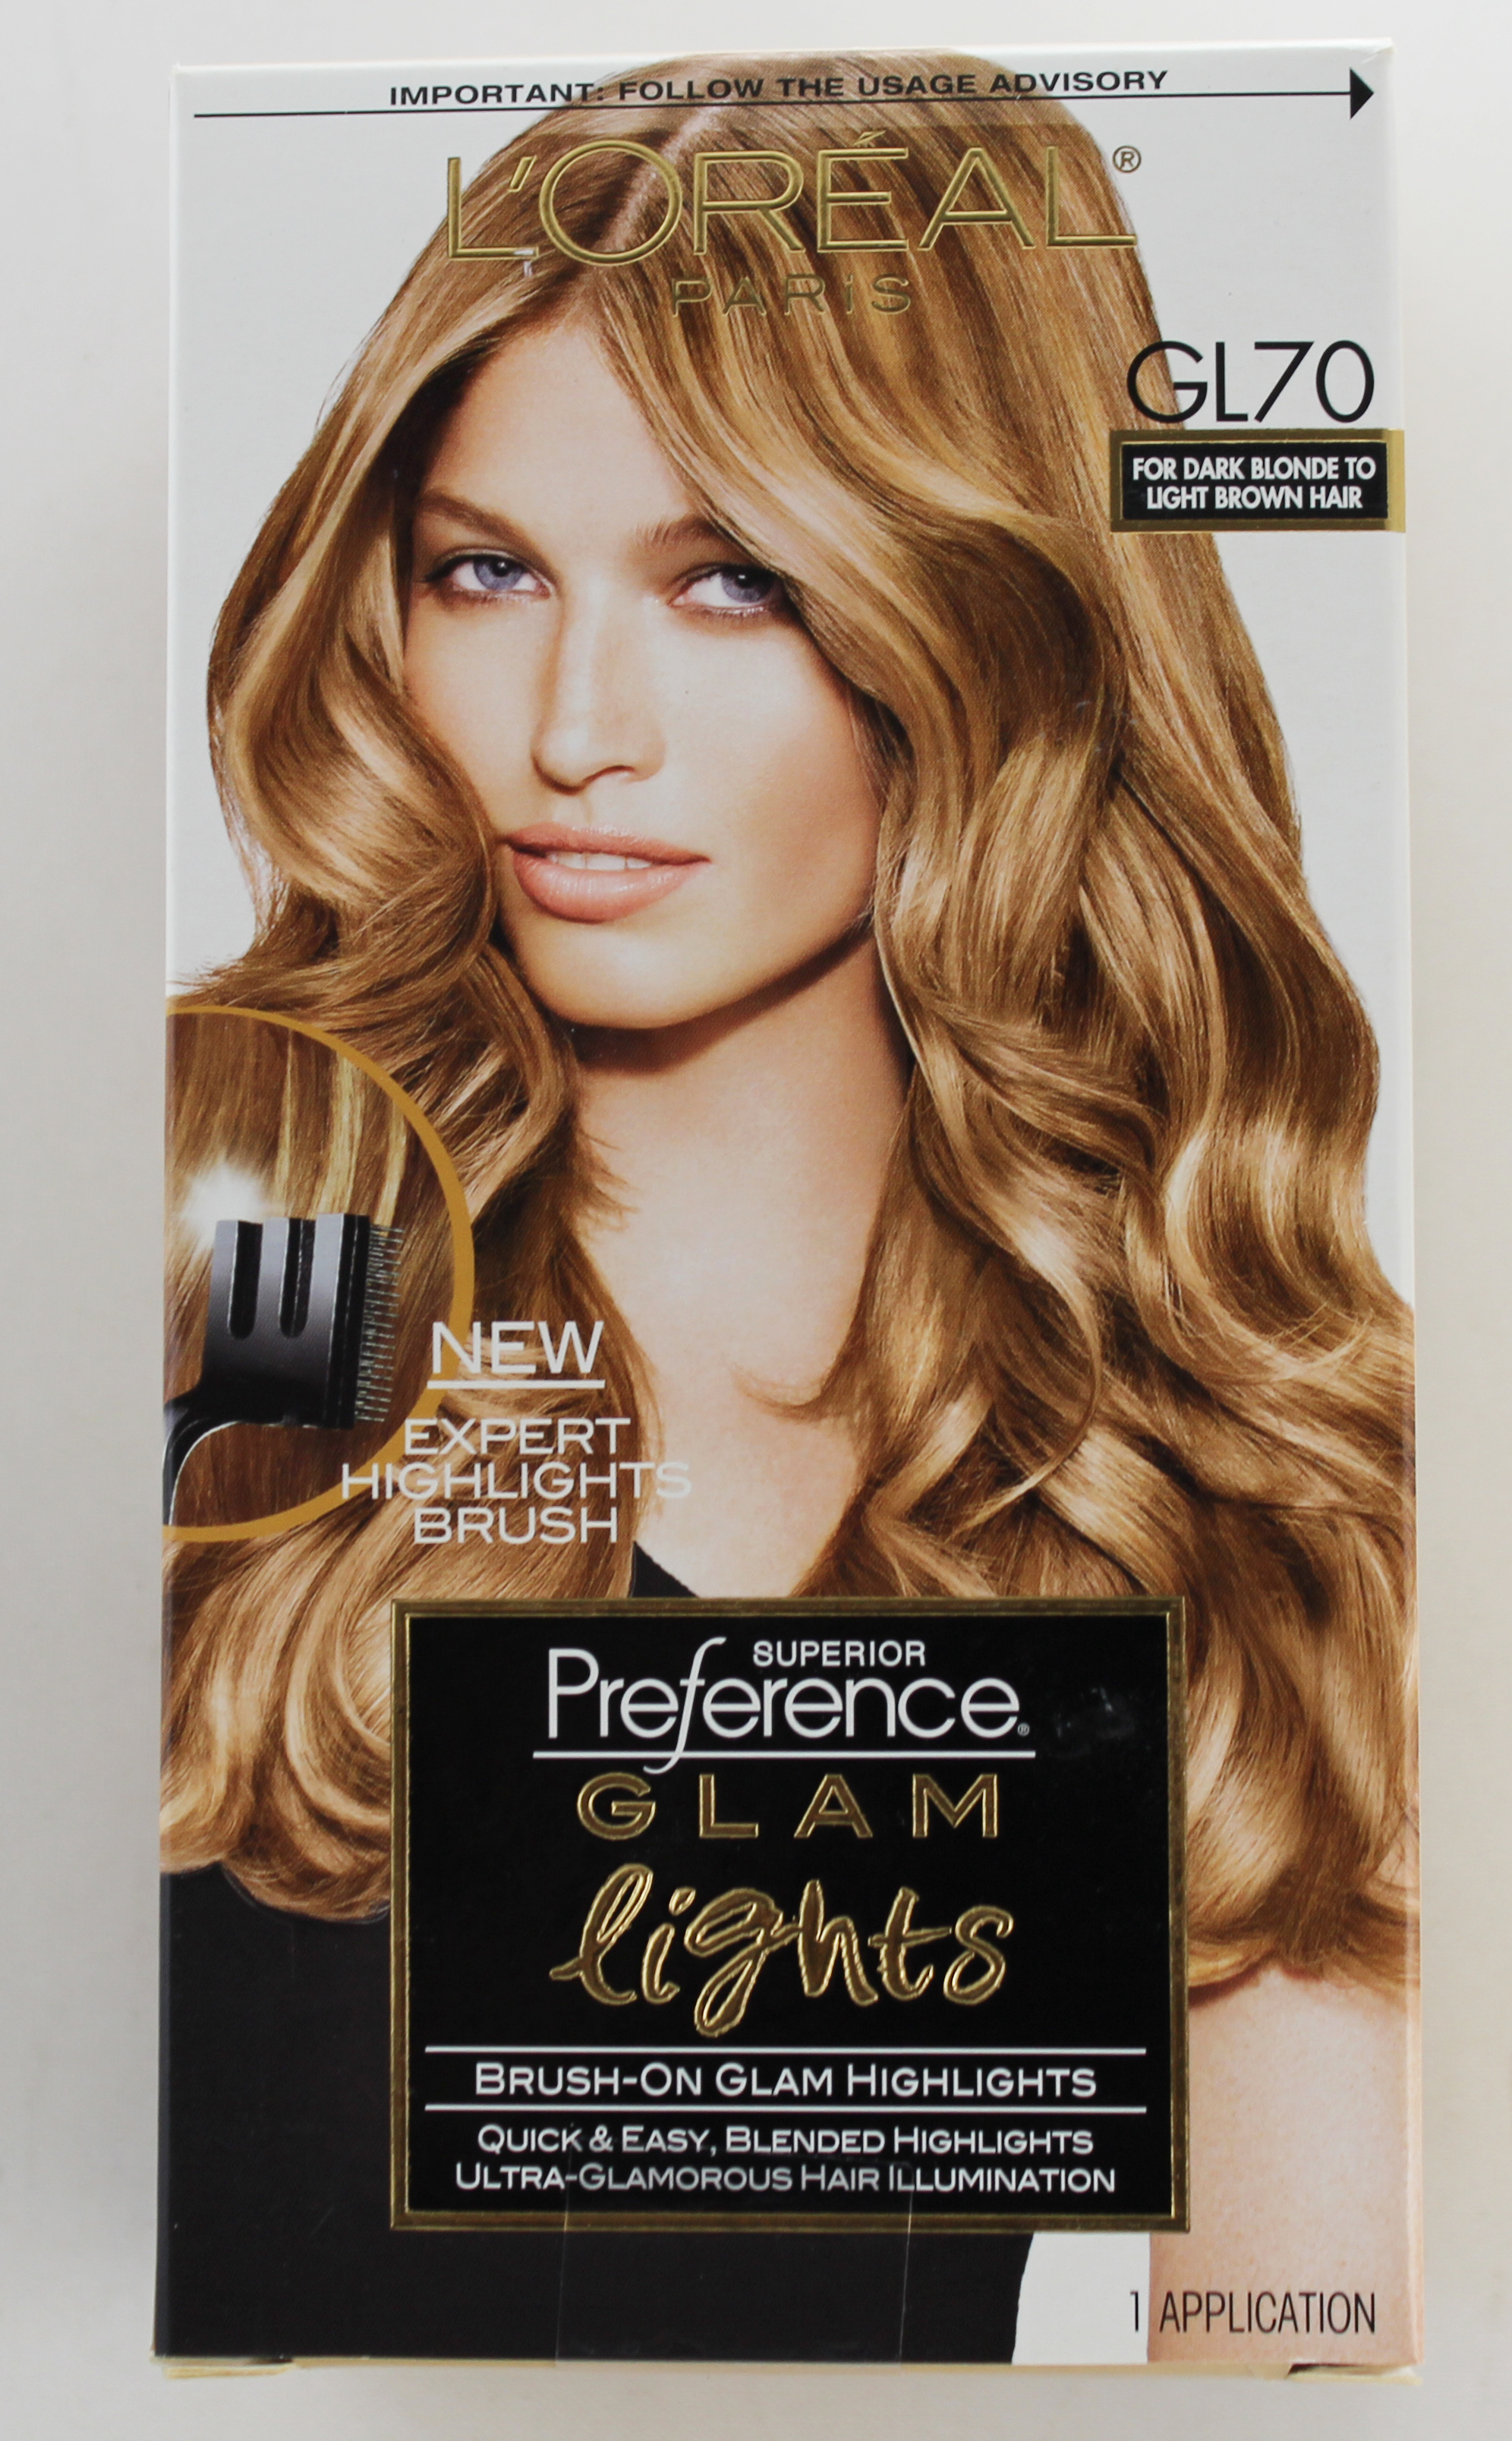 L'Oreal Paris Superior Preference Glam Lights Highlights, GL70 Dark Blonde